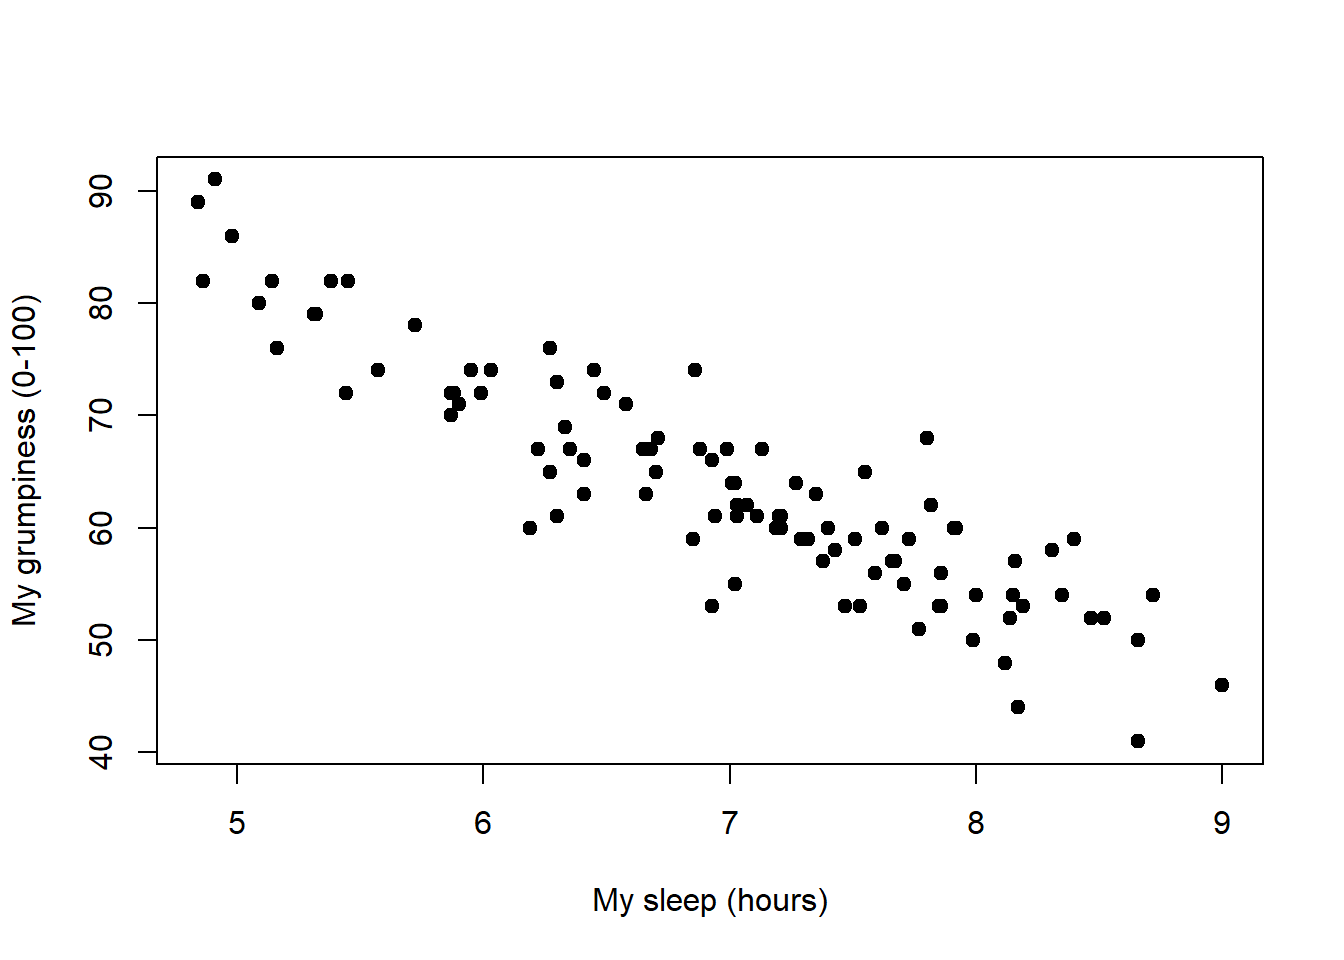 Scatterplot showing grumpiness as a function of hours slept.